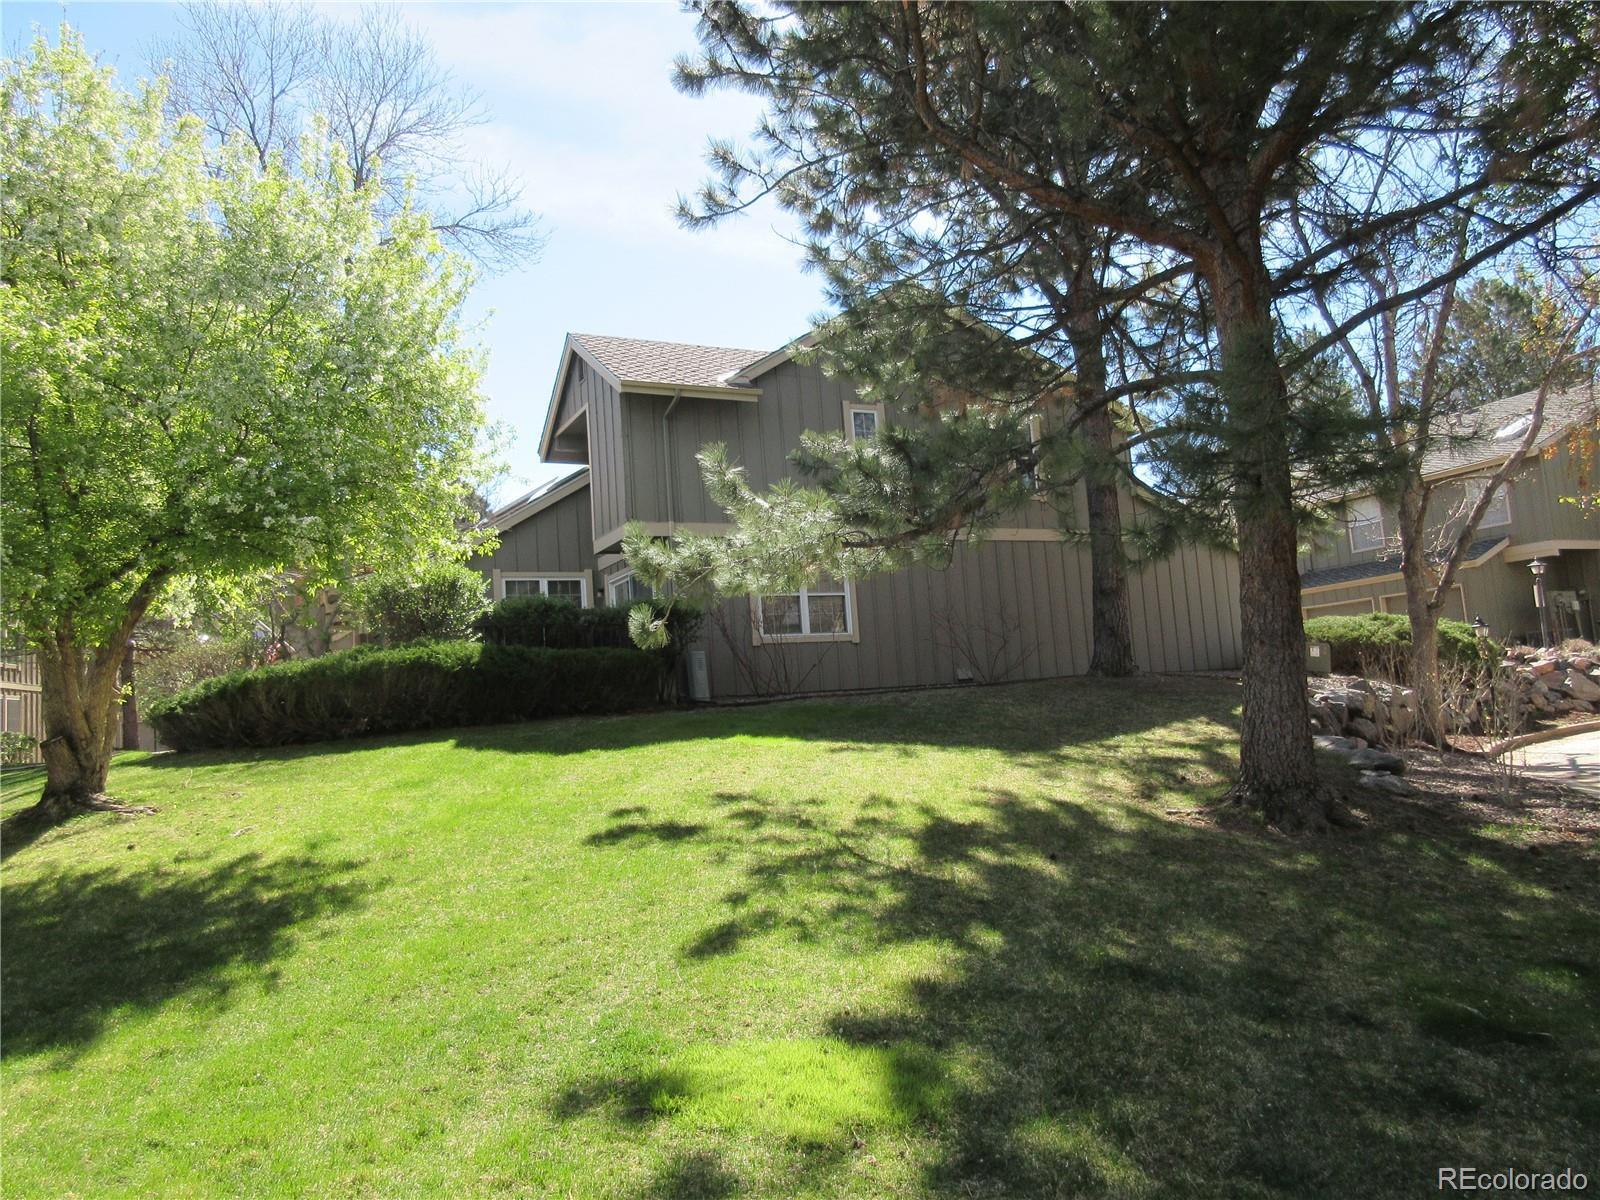 7709 S Curtice Way #E, Littleton, CO 80120 - #: 2404972